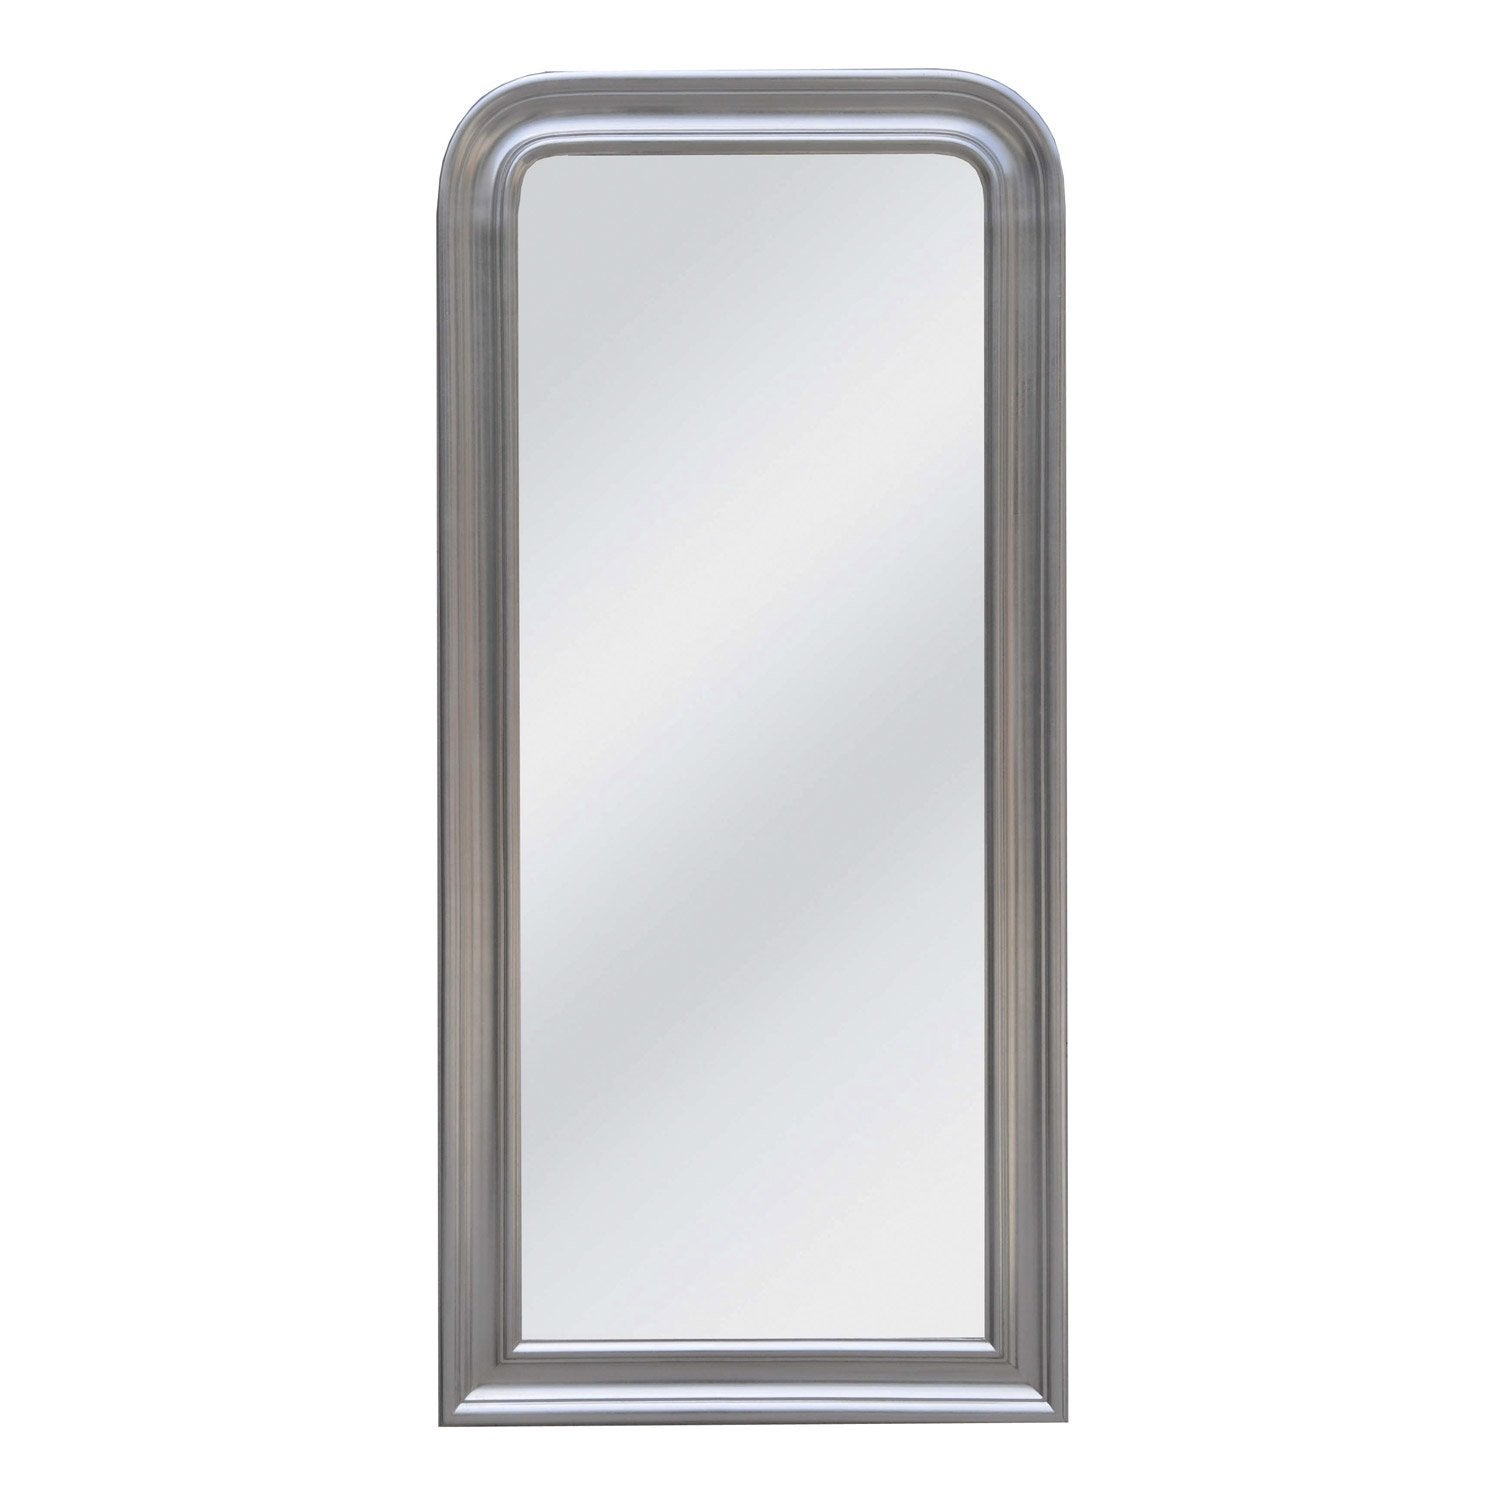 Miroir daventry rectangle argent 70x150 cm leroy merlin for Ou trouver un miroir